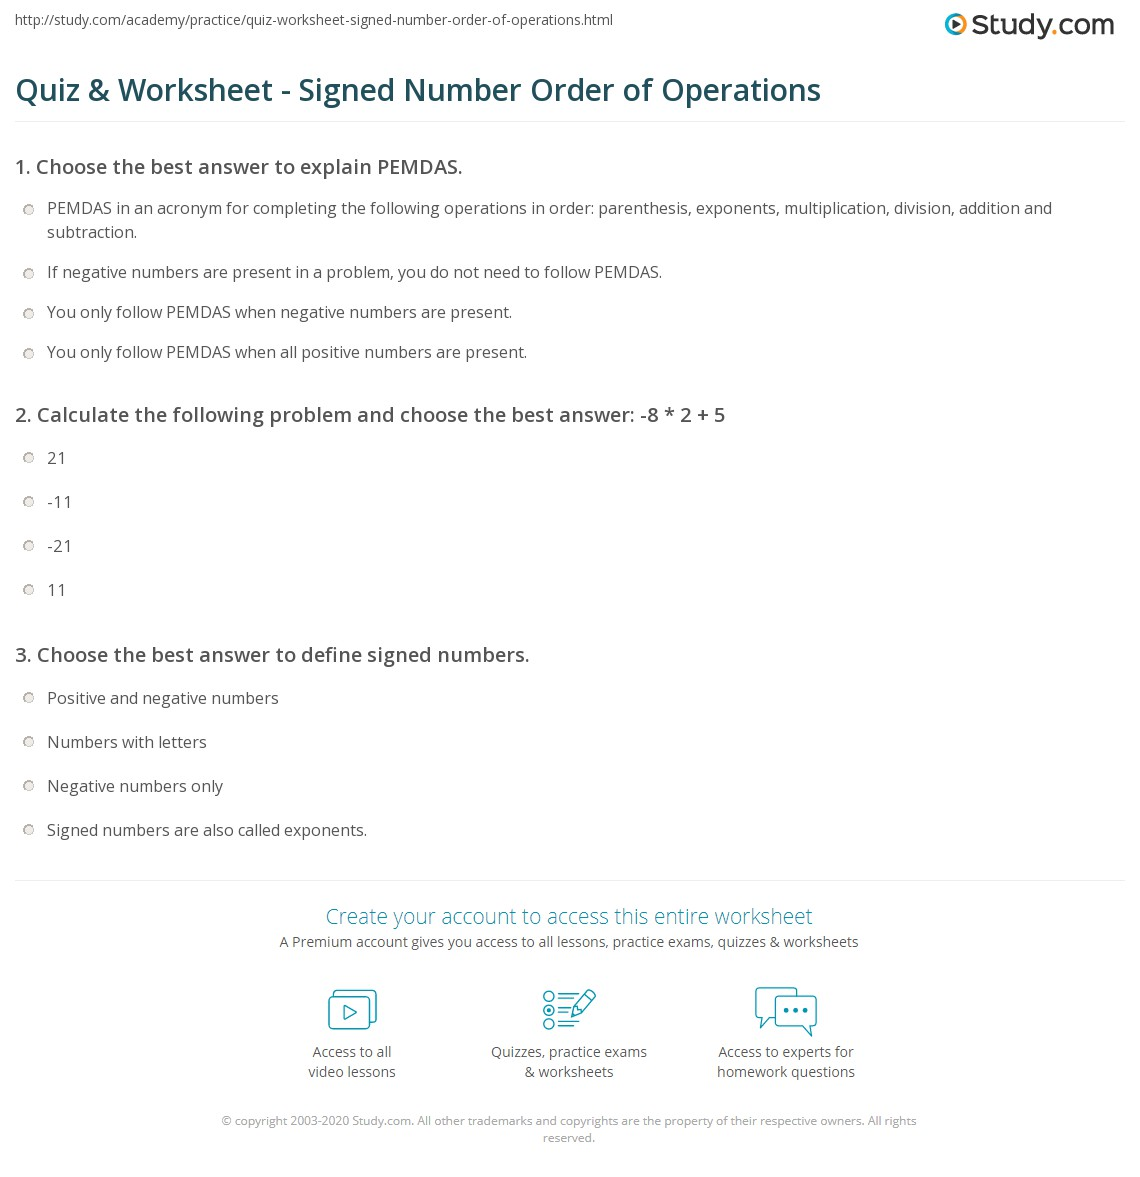 Worksheets Free Order Of Operations Worksheets worksheet order of operations worksheets with exponents 7 example lvn resume homework pizzazz math notes free on 6th grade for printable 5th fun pa